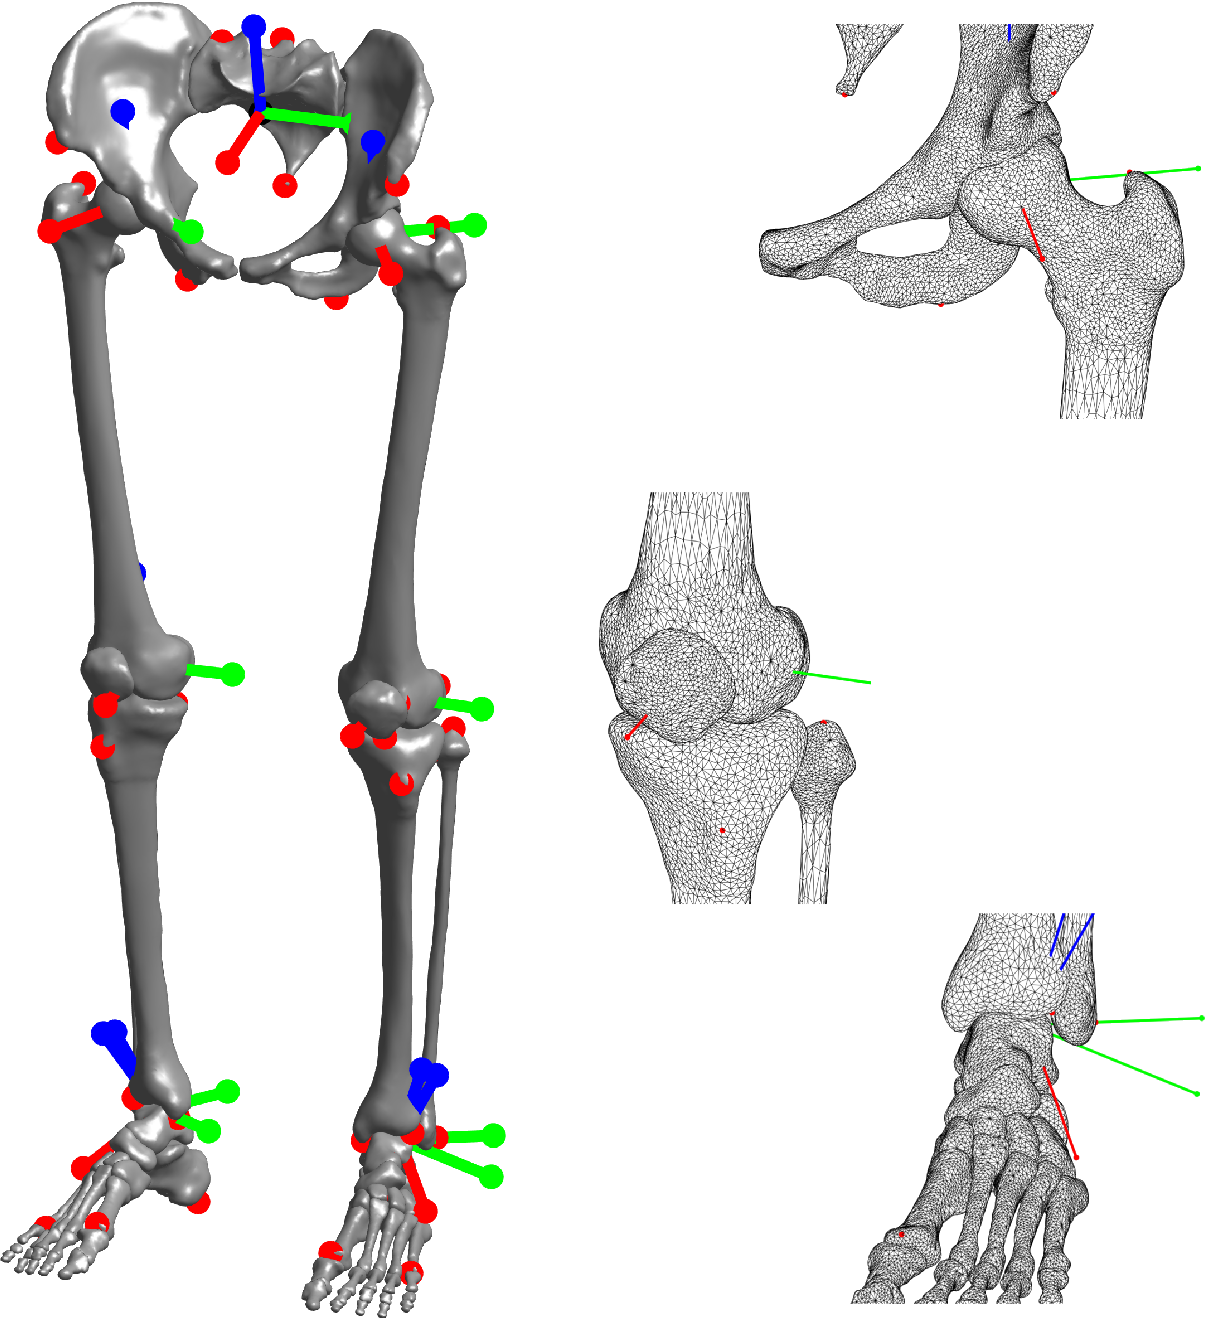 High Resolution Computer Meshes Of The Lower Body Bones Of An Adult